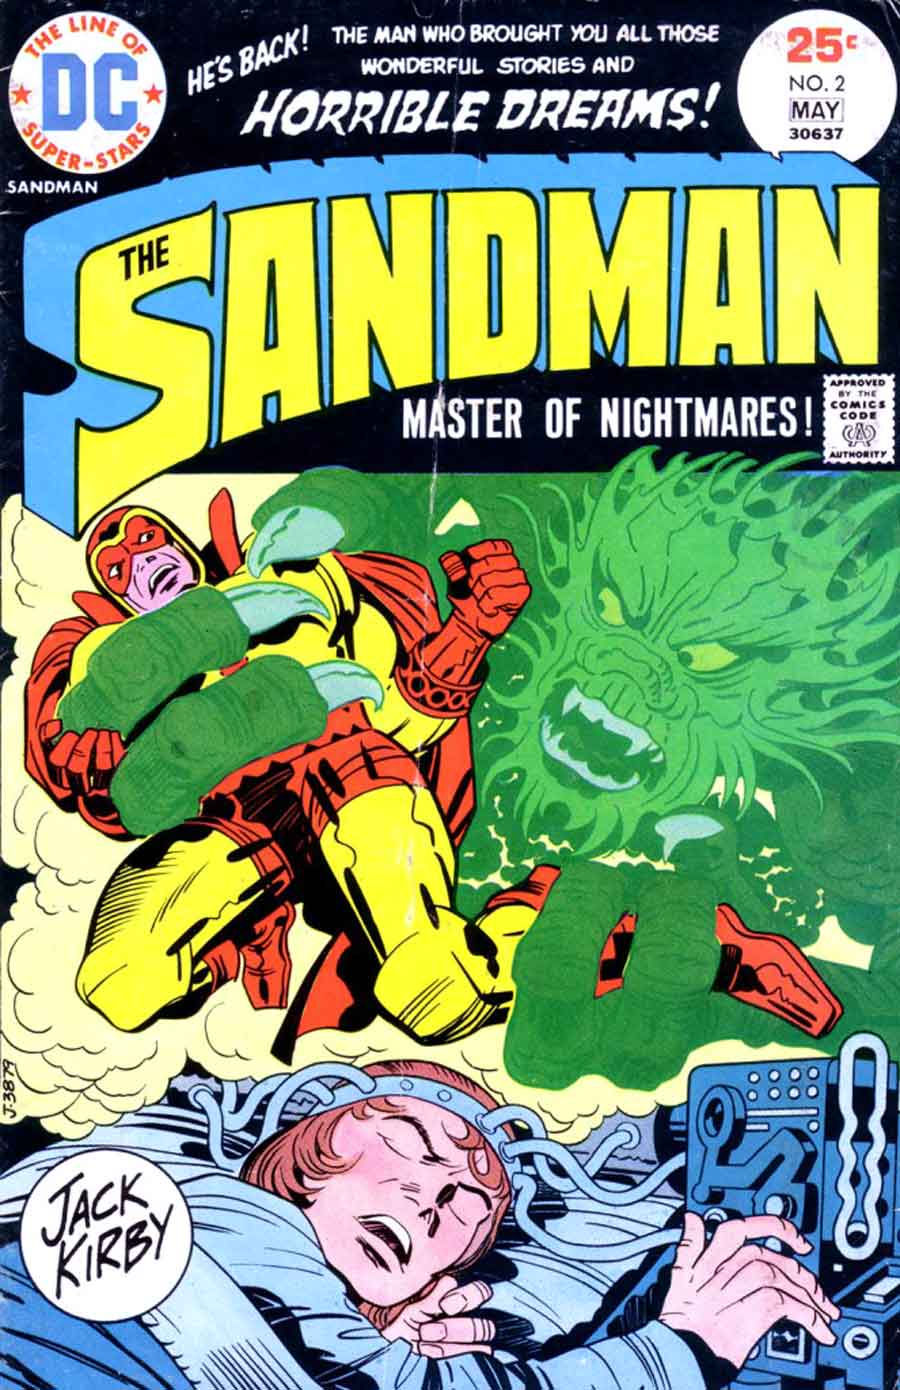 The Sandman v1 #2 dc bronze age comic book cover art by Jack Kirby